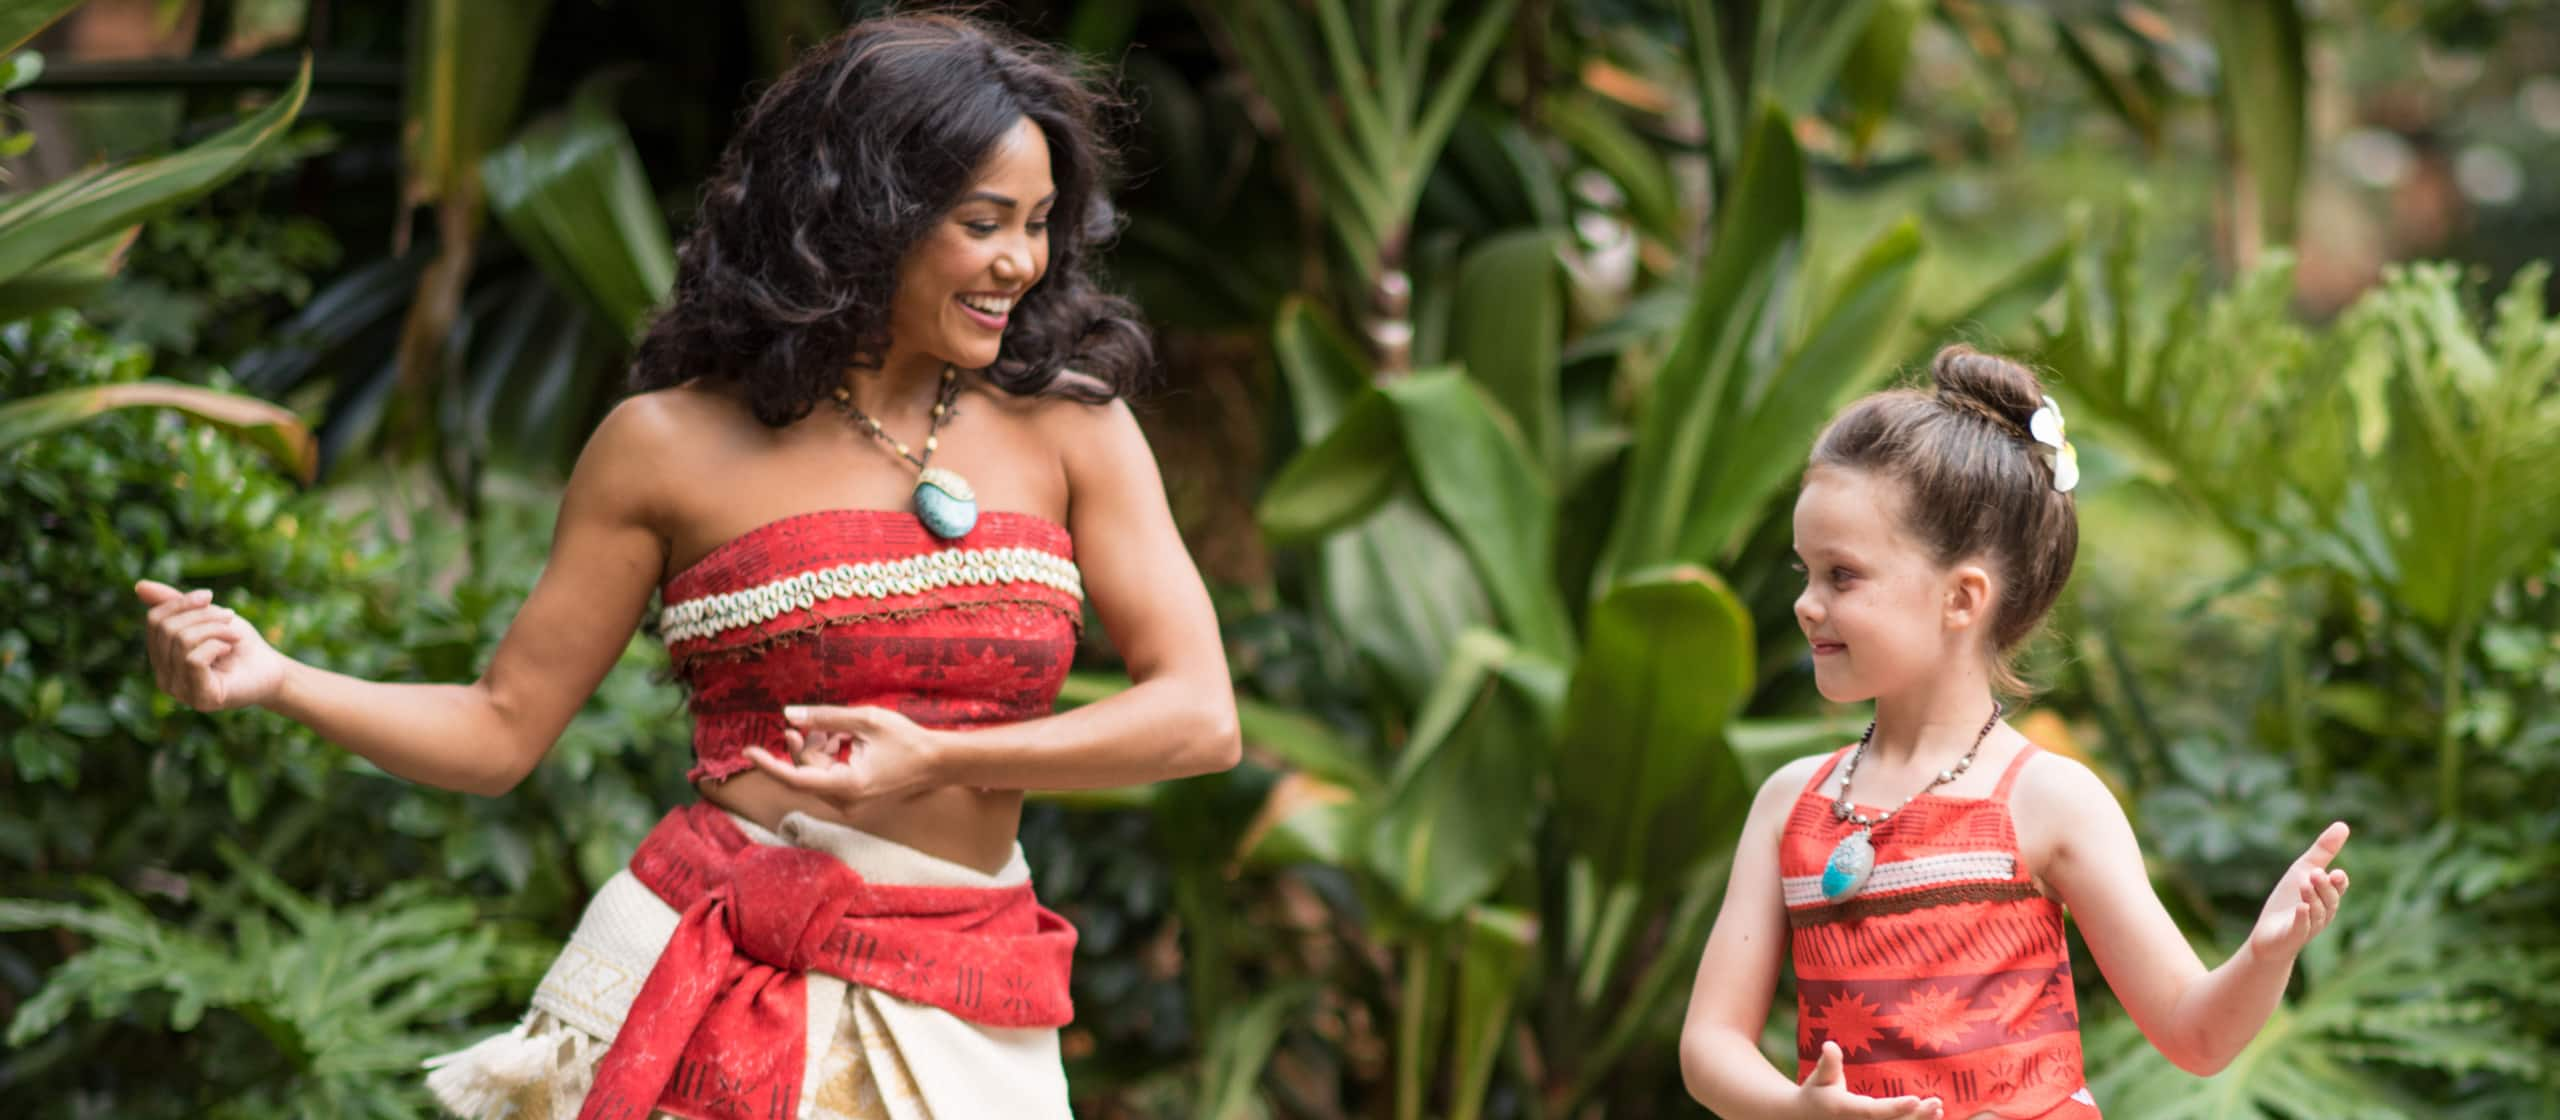 A Hawaiian hula dancer teaches the hula to a girl who is dressed in traditional Hawaiian clothes